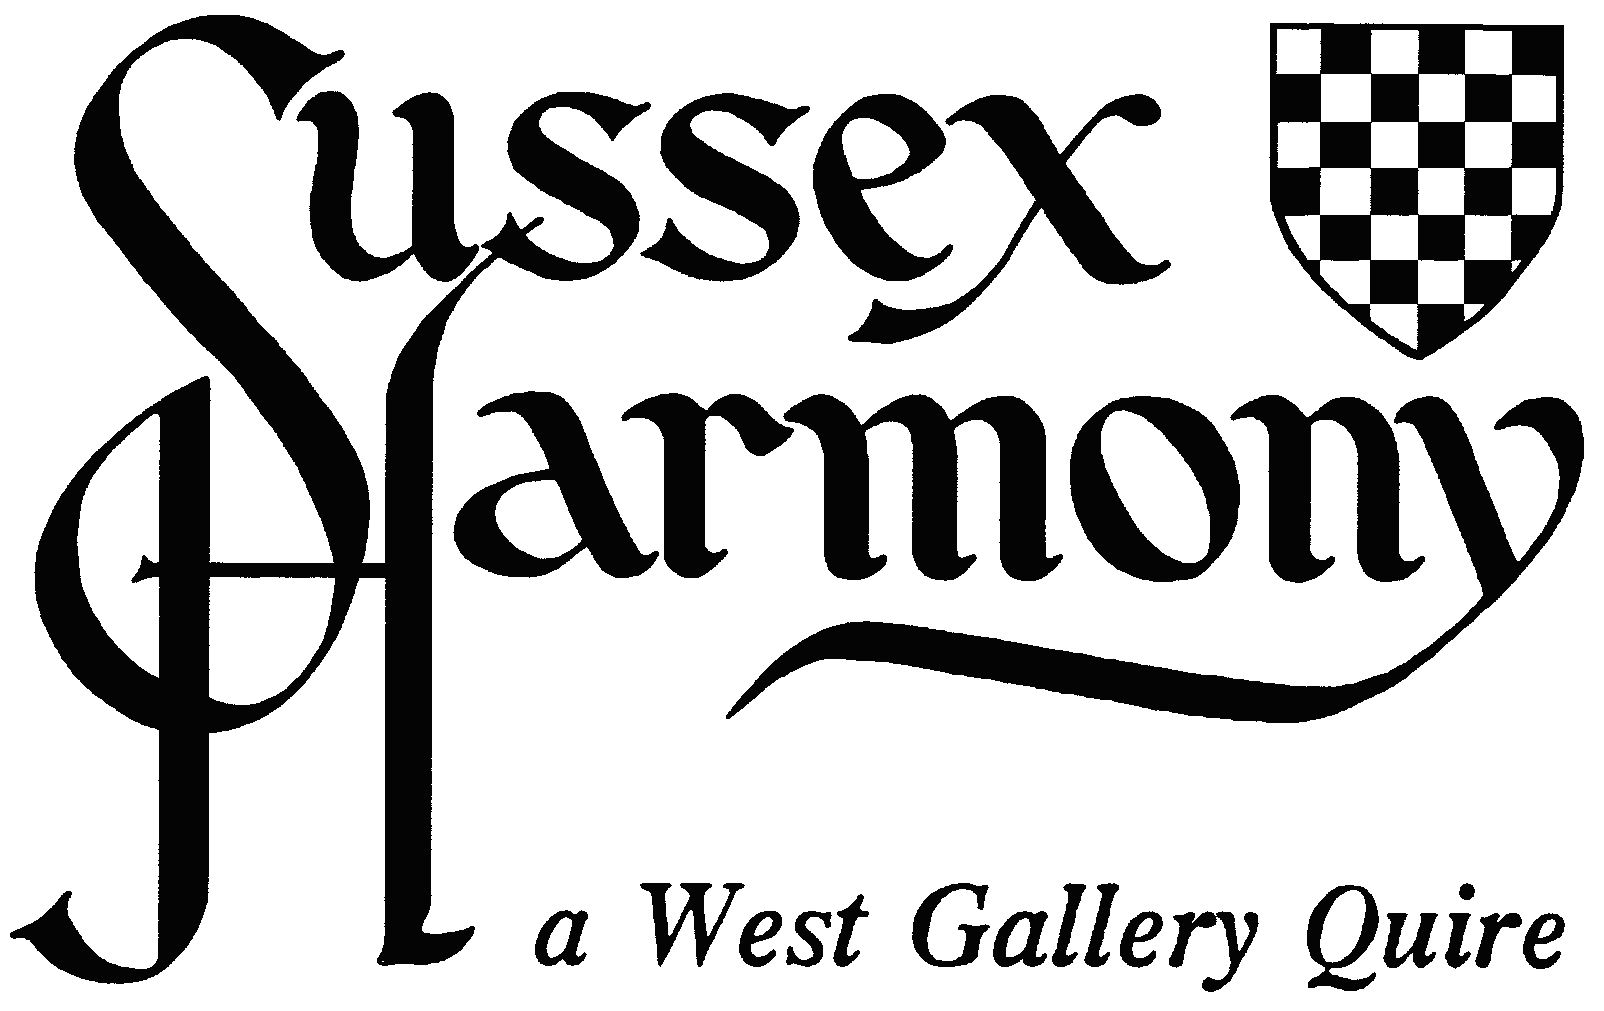 logo (c) Sussex Harmony